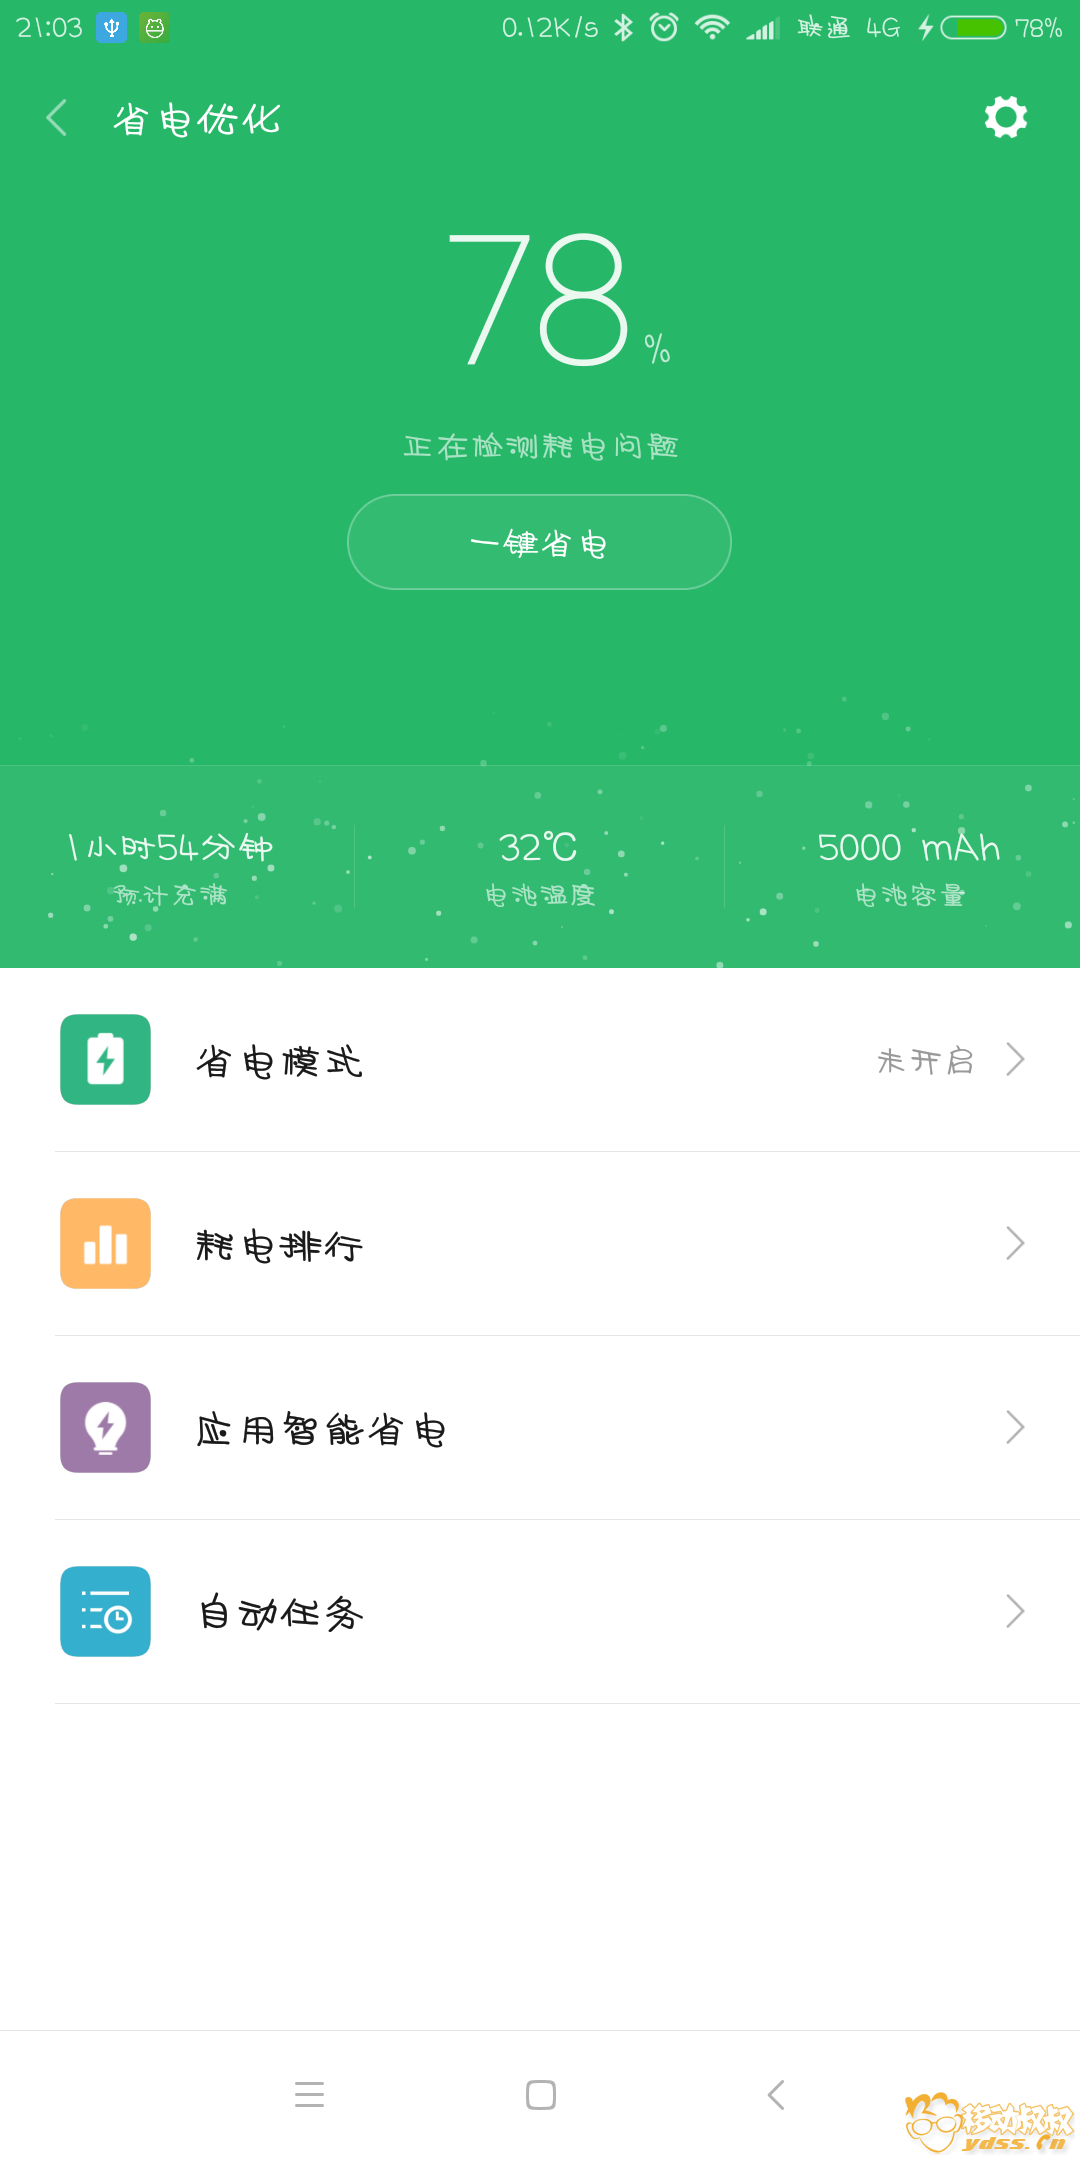 Screenshot_2018-03-24-21-03-02-612_com.miui.securitycenter.png